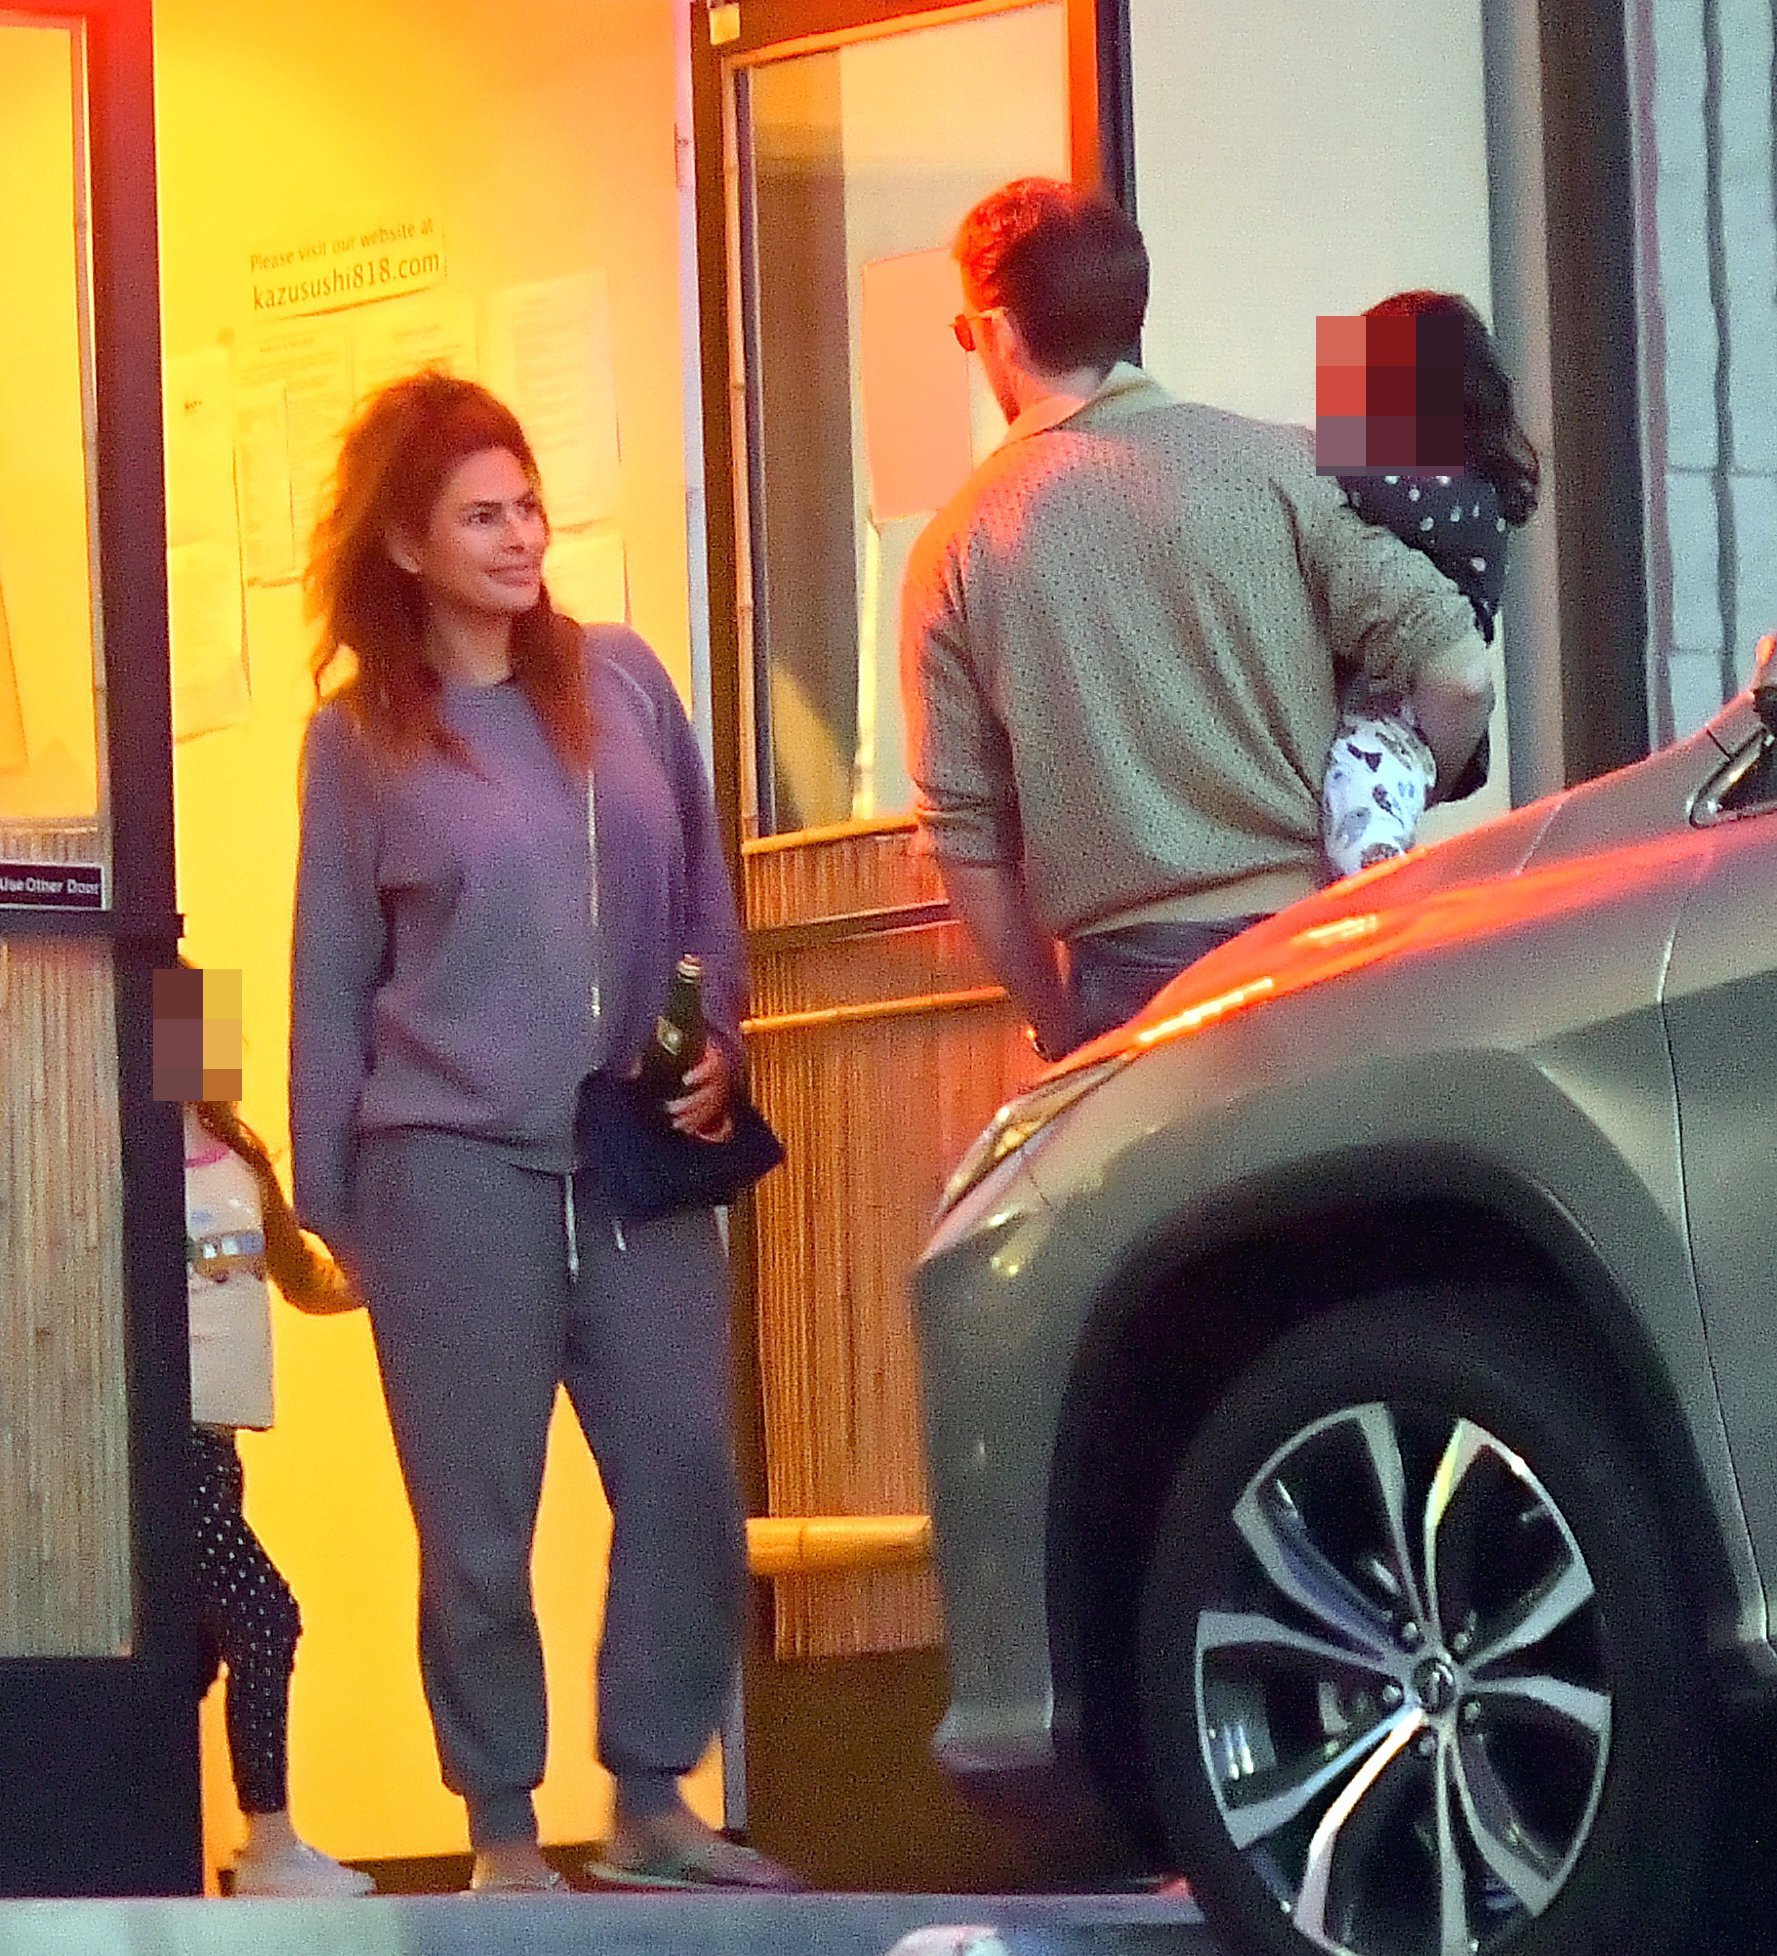 EXCLUSIVE: Ryan Gosling and Eva Mendes take their daughters out on a Sushi dinner date in Studio City. Ryan and Eva seemed really happy to be spending quality time with their little ones as they left Kazu sushi in Studio City. Eva wore a sweat suit ***SPECIAL INSTRUCTIONS*** Please pixelate children's faces before publication.***. 13 May 2019 Pictured: Ryan Gosling and Eva Mendes. Photo credit: Marksman / MEGA TheMegaAgency.com +1 888 505 6342 (Mega Agency TagID: MEGA418740_006.jpg) [Photo via Mega Agency]